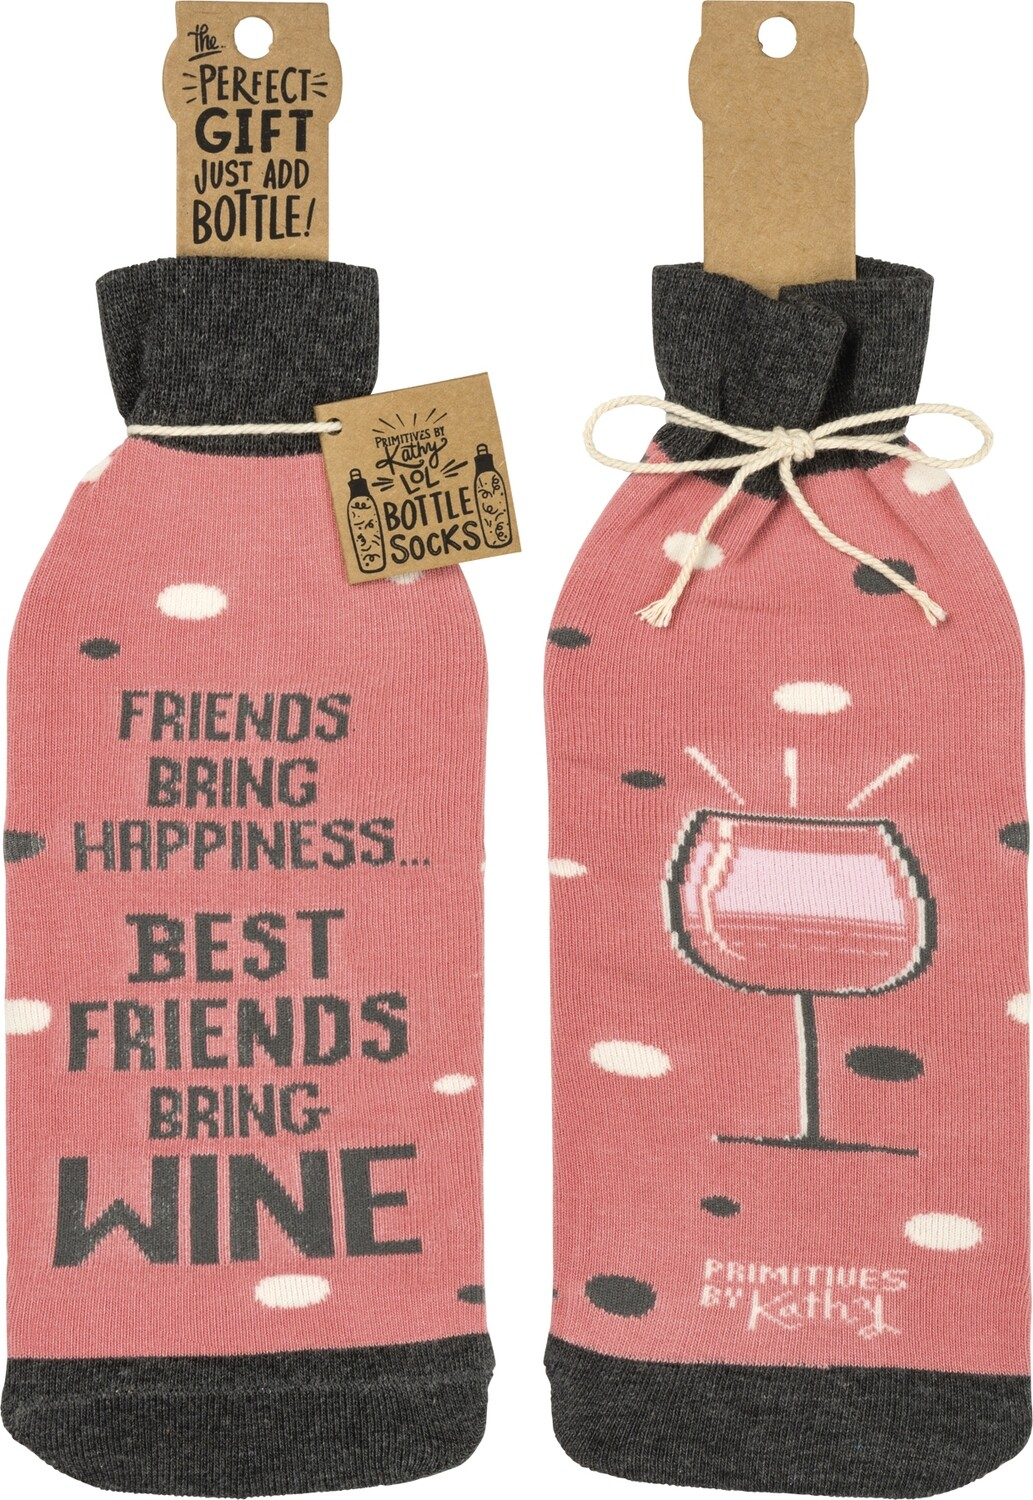 Wine Bottle Socks; Best Friends Bring Wine